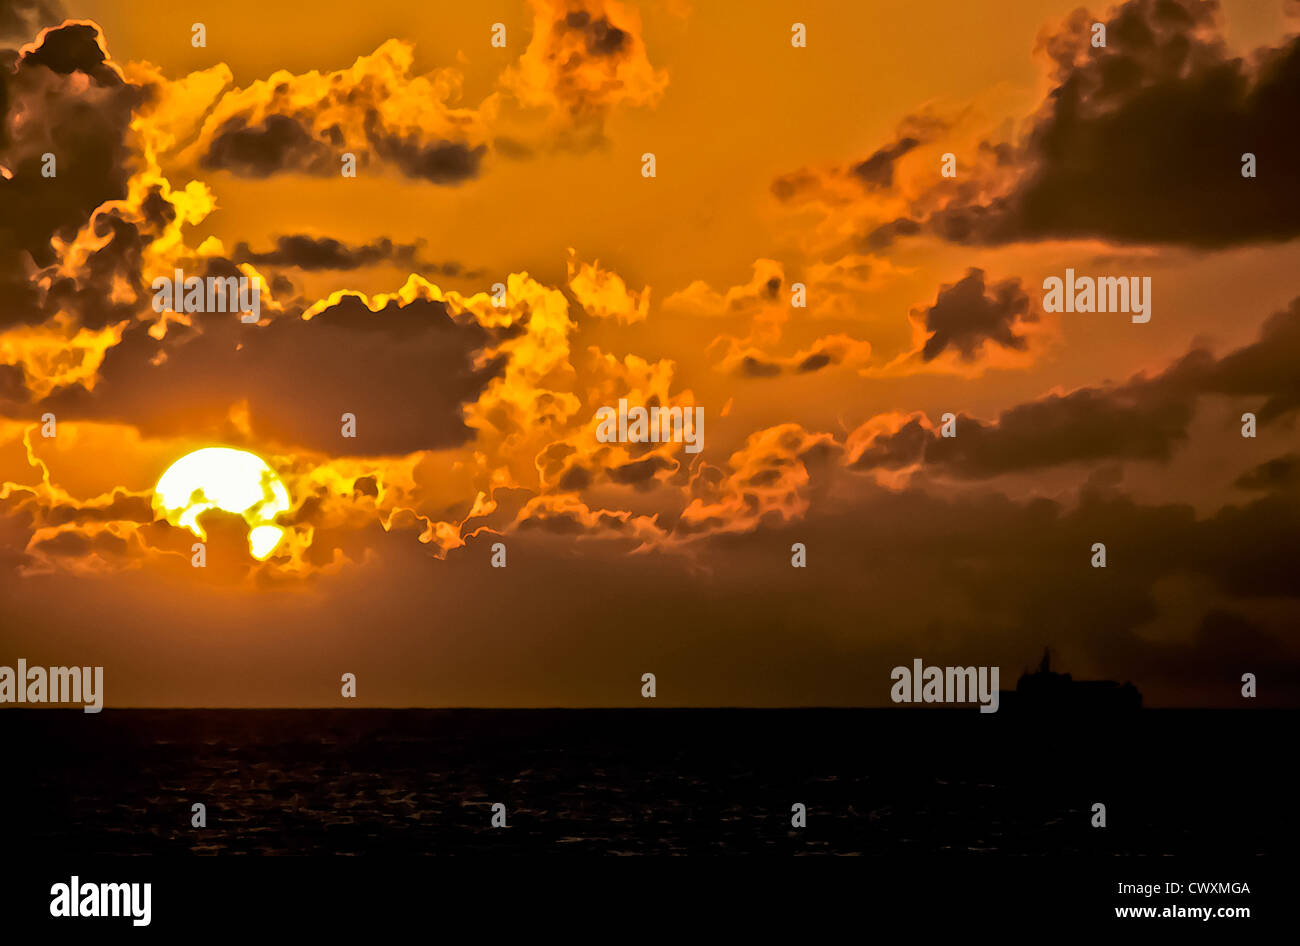 8101. Sunset over the sea stylised - Stock Image